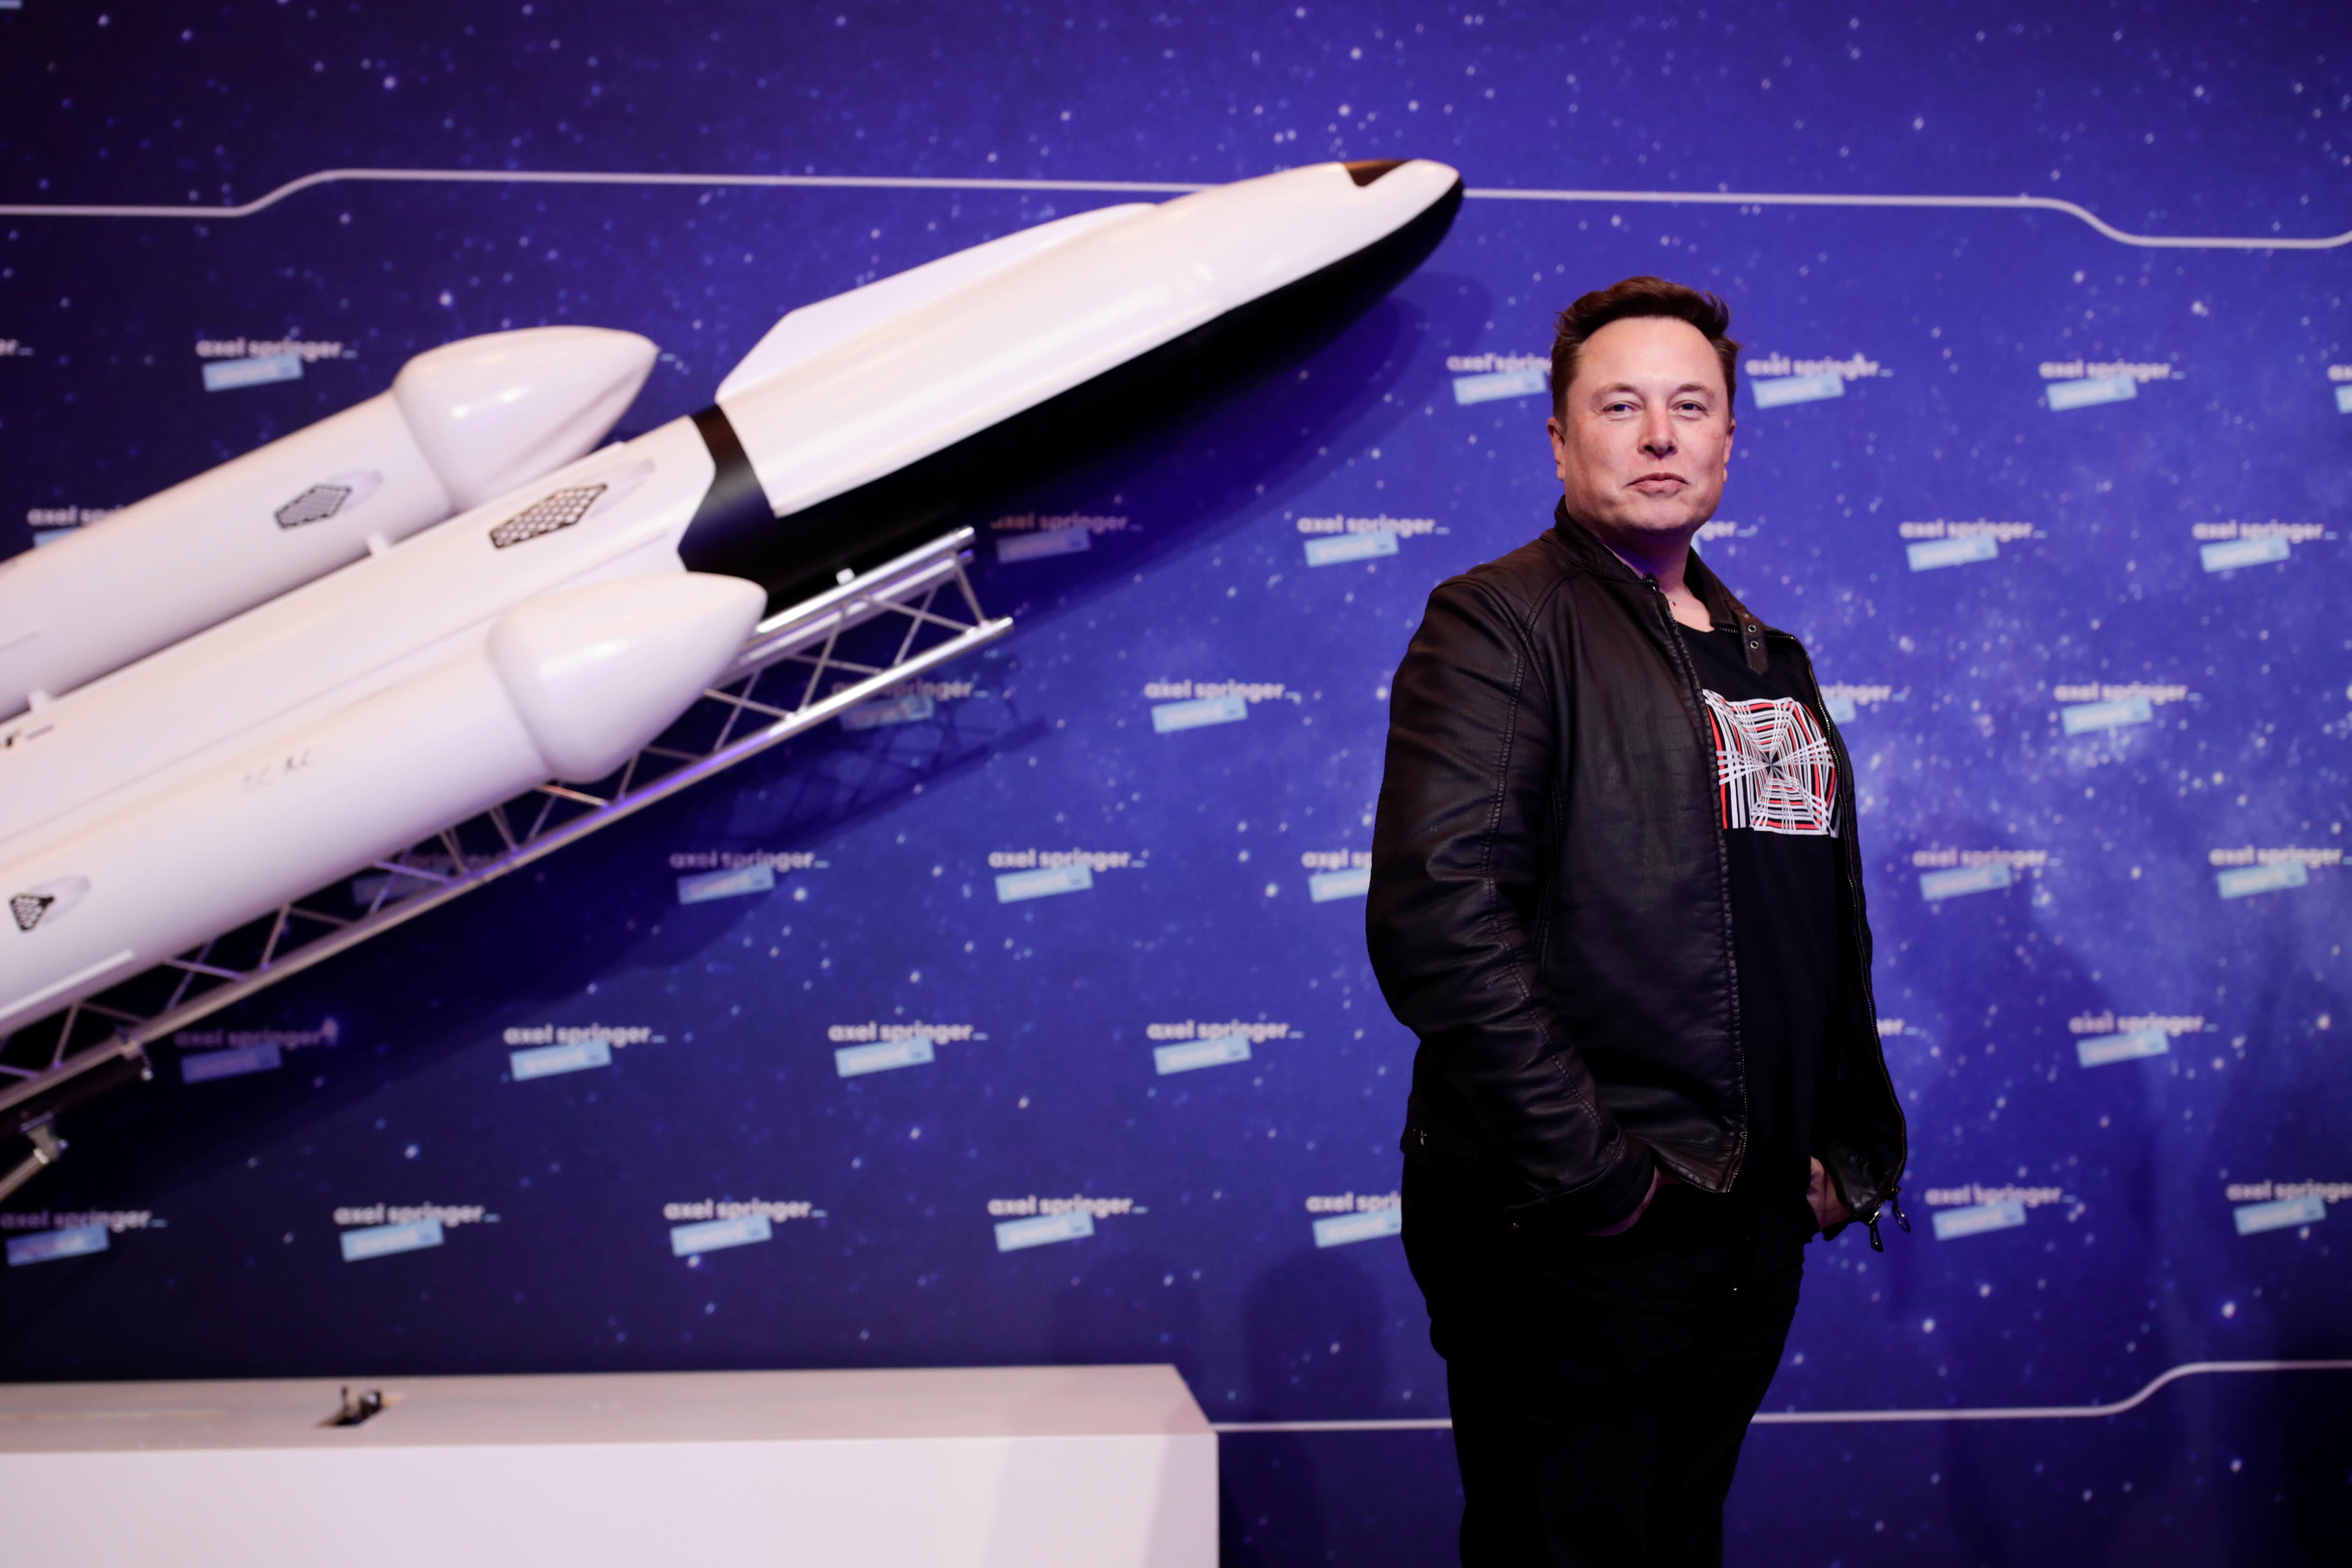 SpaceX Launches Ants, Avocados, Robot to Space Station